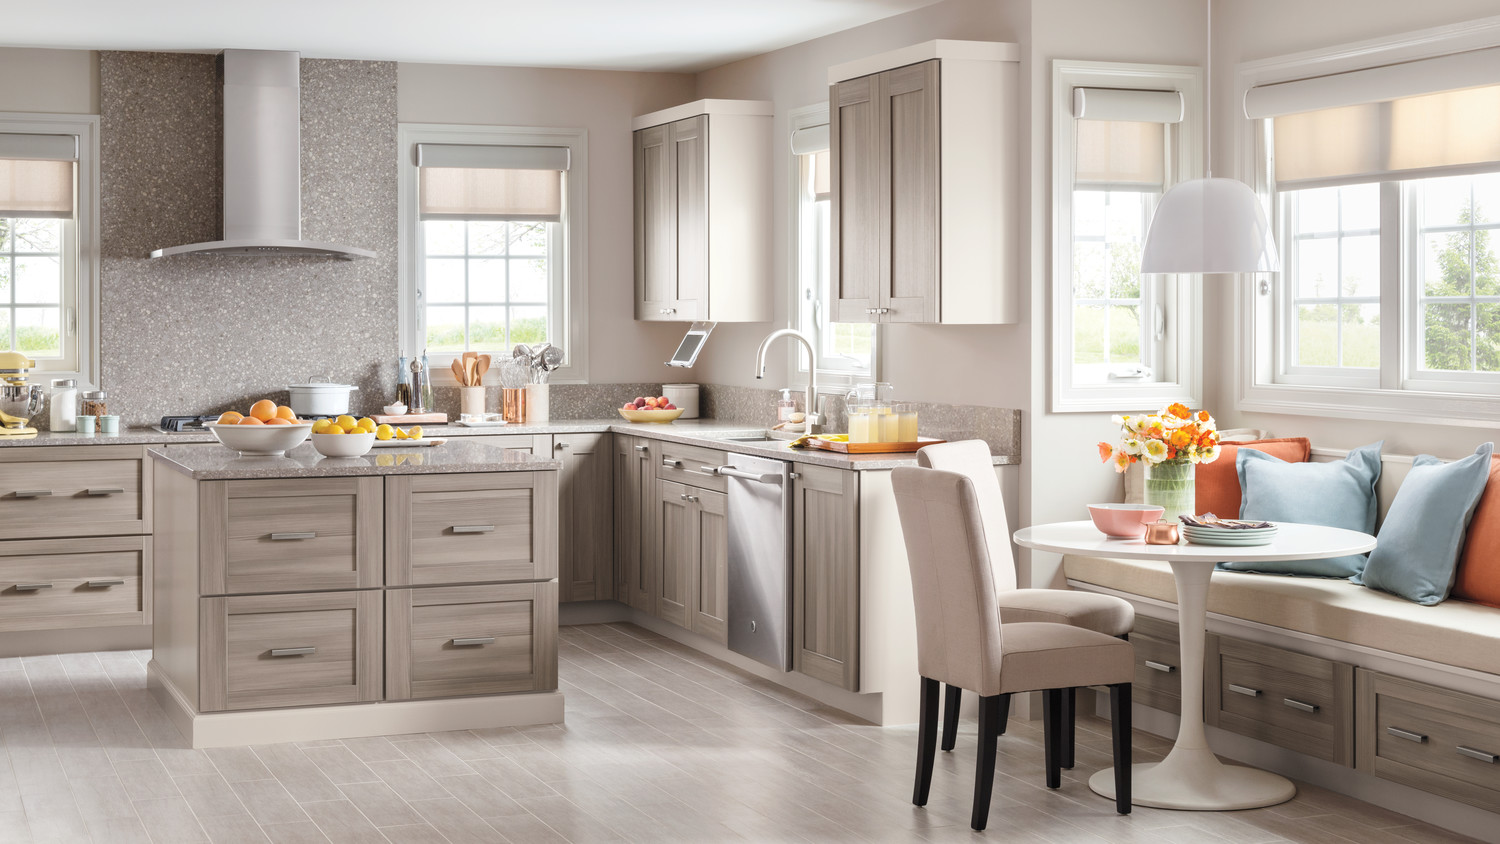 Ask Martha: What are Textured PureStyle Cabinets?